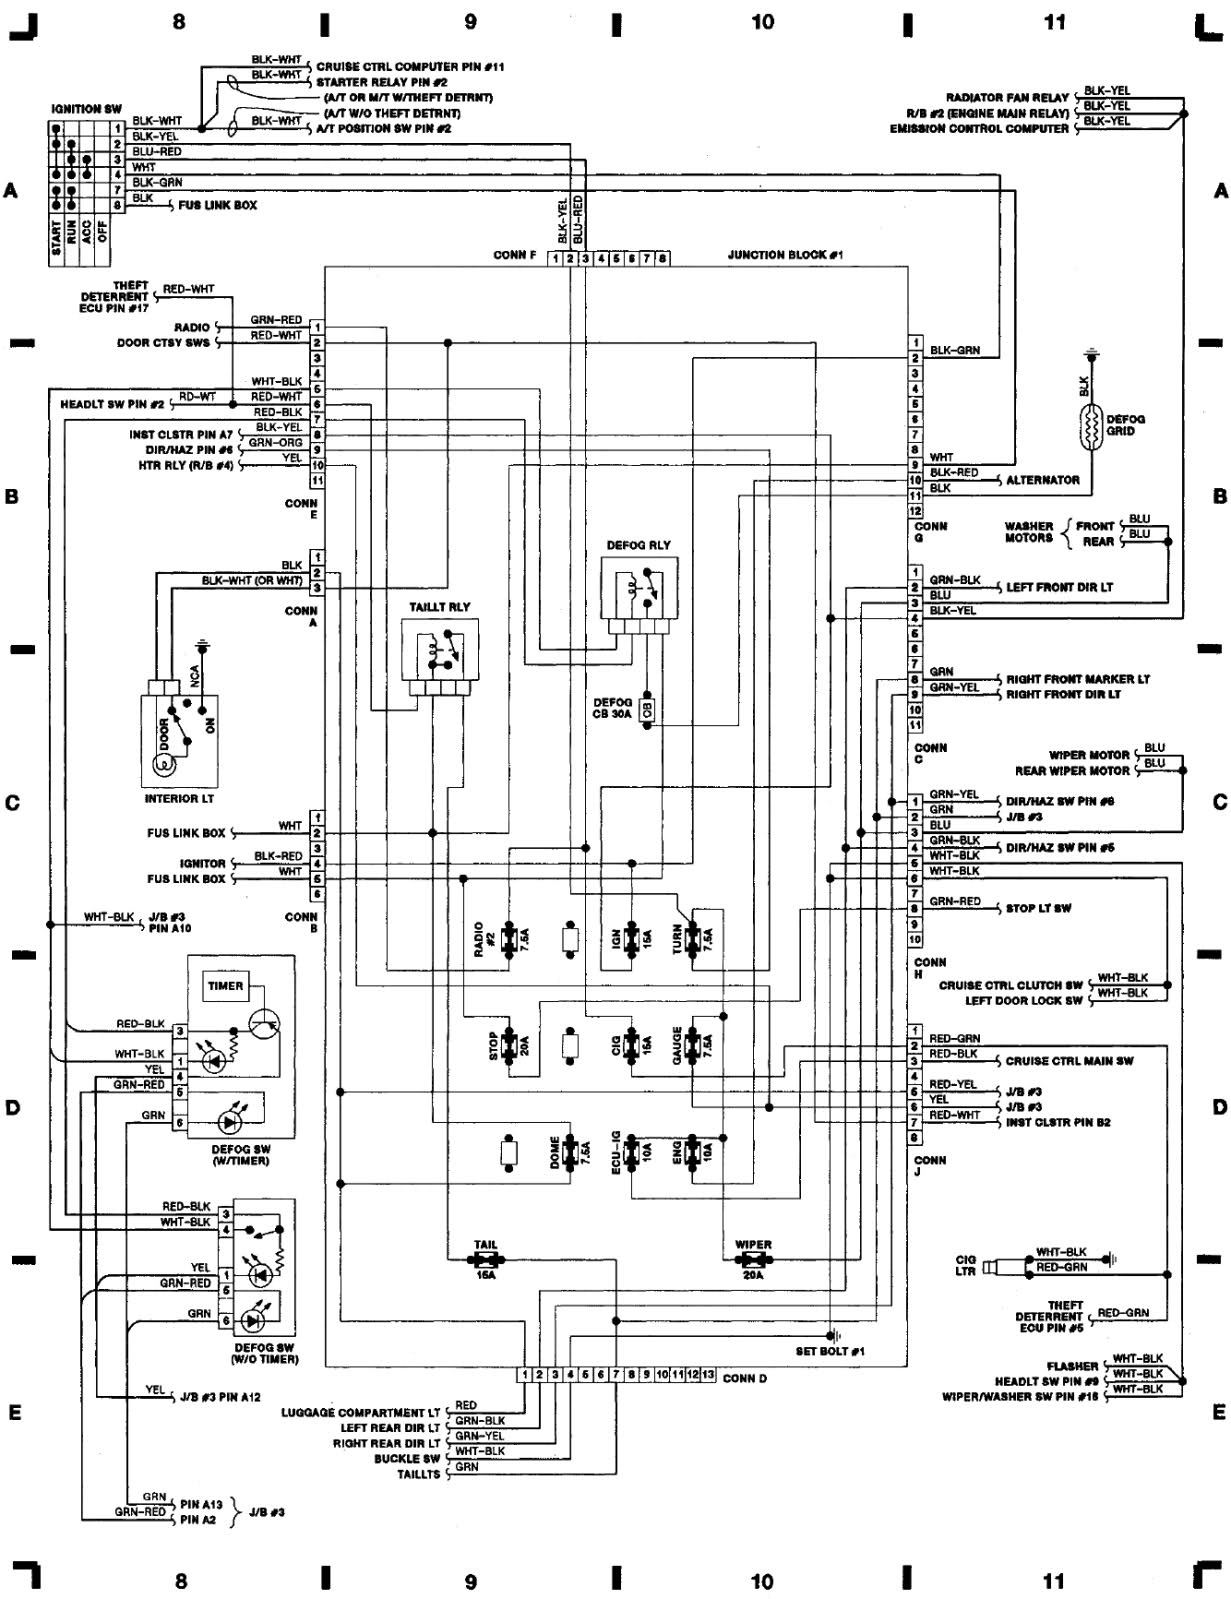 2000 Lincoln Navigator Fuse Box Diagram Golden Schematic 2005 Toyota Celica Image Details